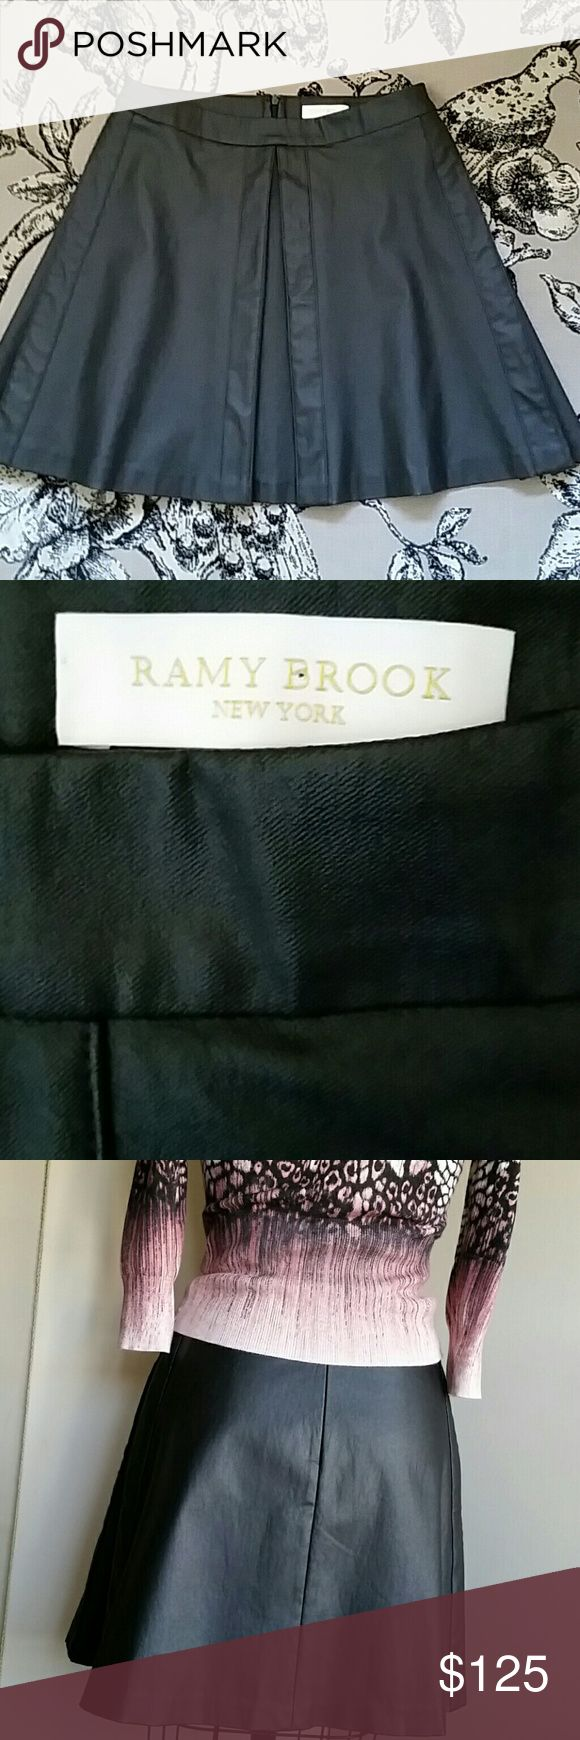 "Ramy Brook Short Skirt w/ Front & Side Pleats 6 Like new, stretch oiled twill material giving a leather like look, pressed with a press cloth so in beautiful ready to wear condition, 14.5"" flat waist, 17"" long, doesn't have size label but fits my size 6 frame. Charcoal to black color. Free Karen Miller top as shown with purchase. Ramy Brook  Skirts Mini"